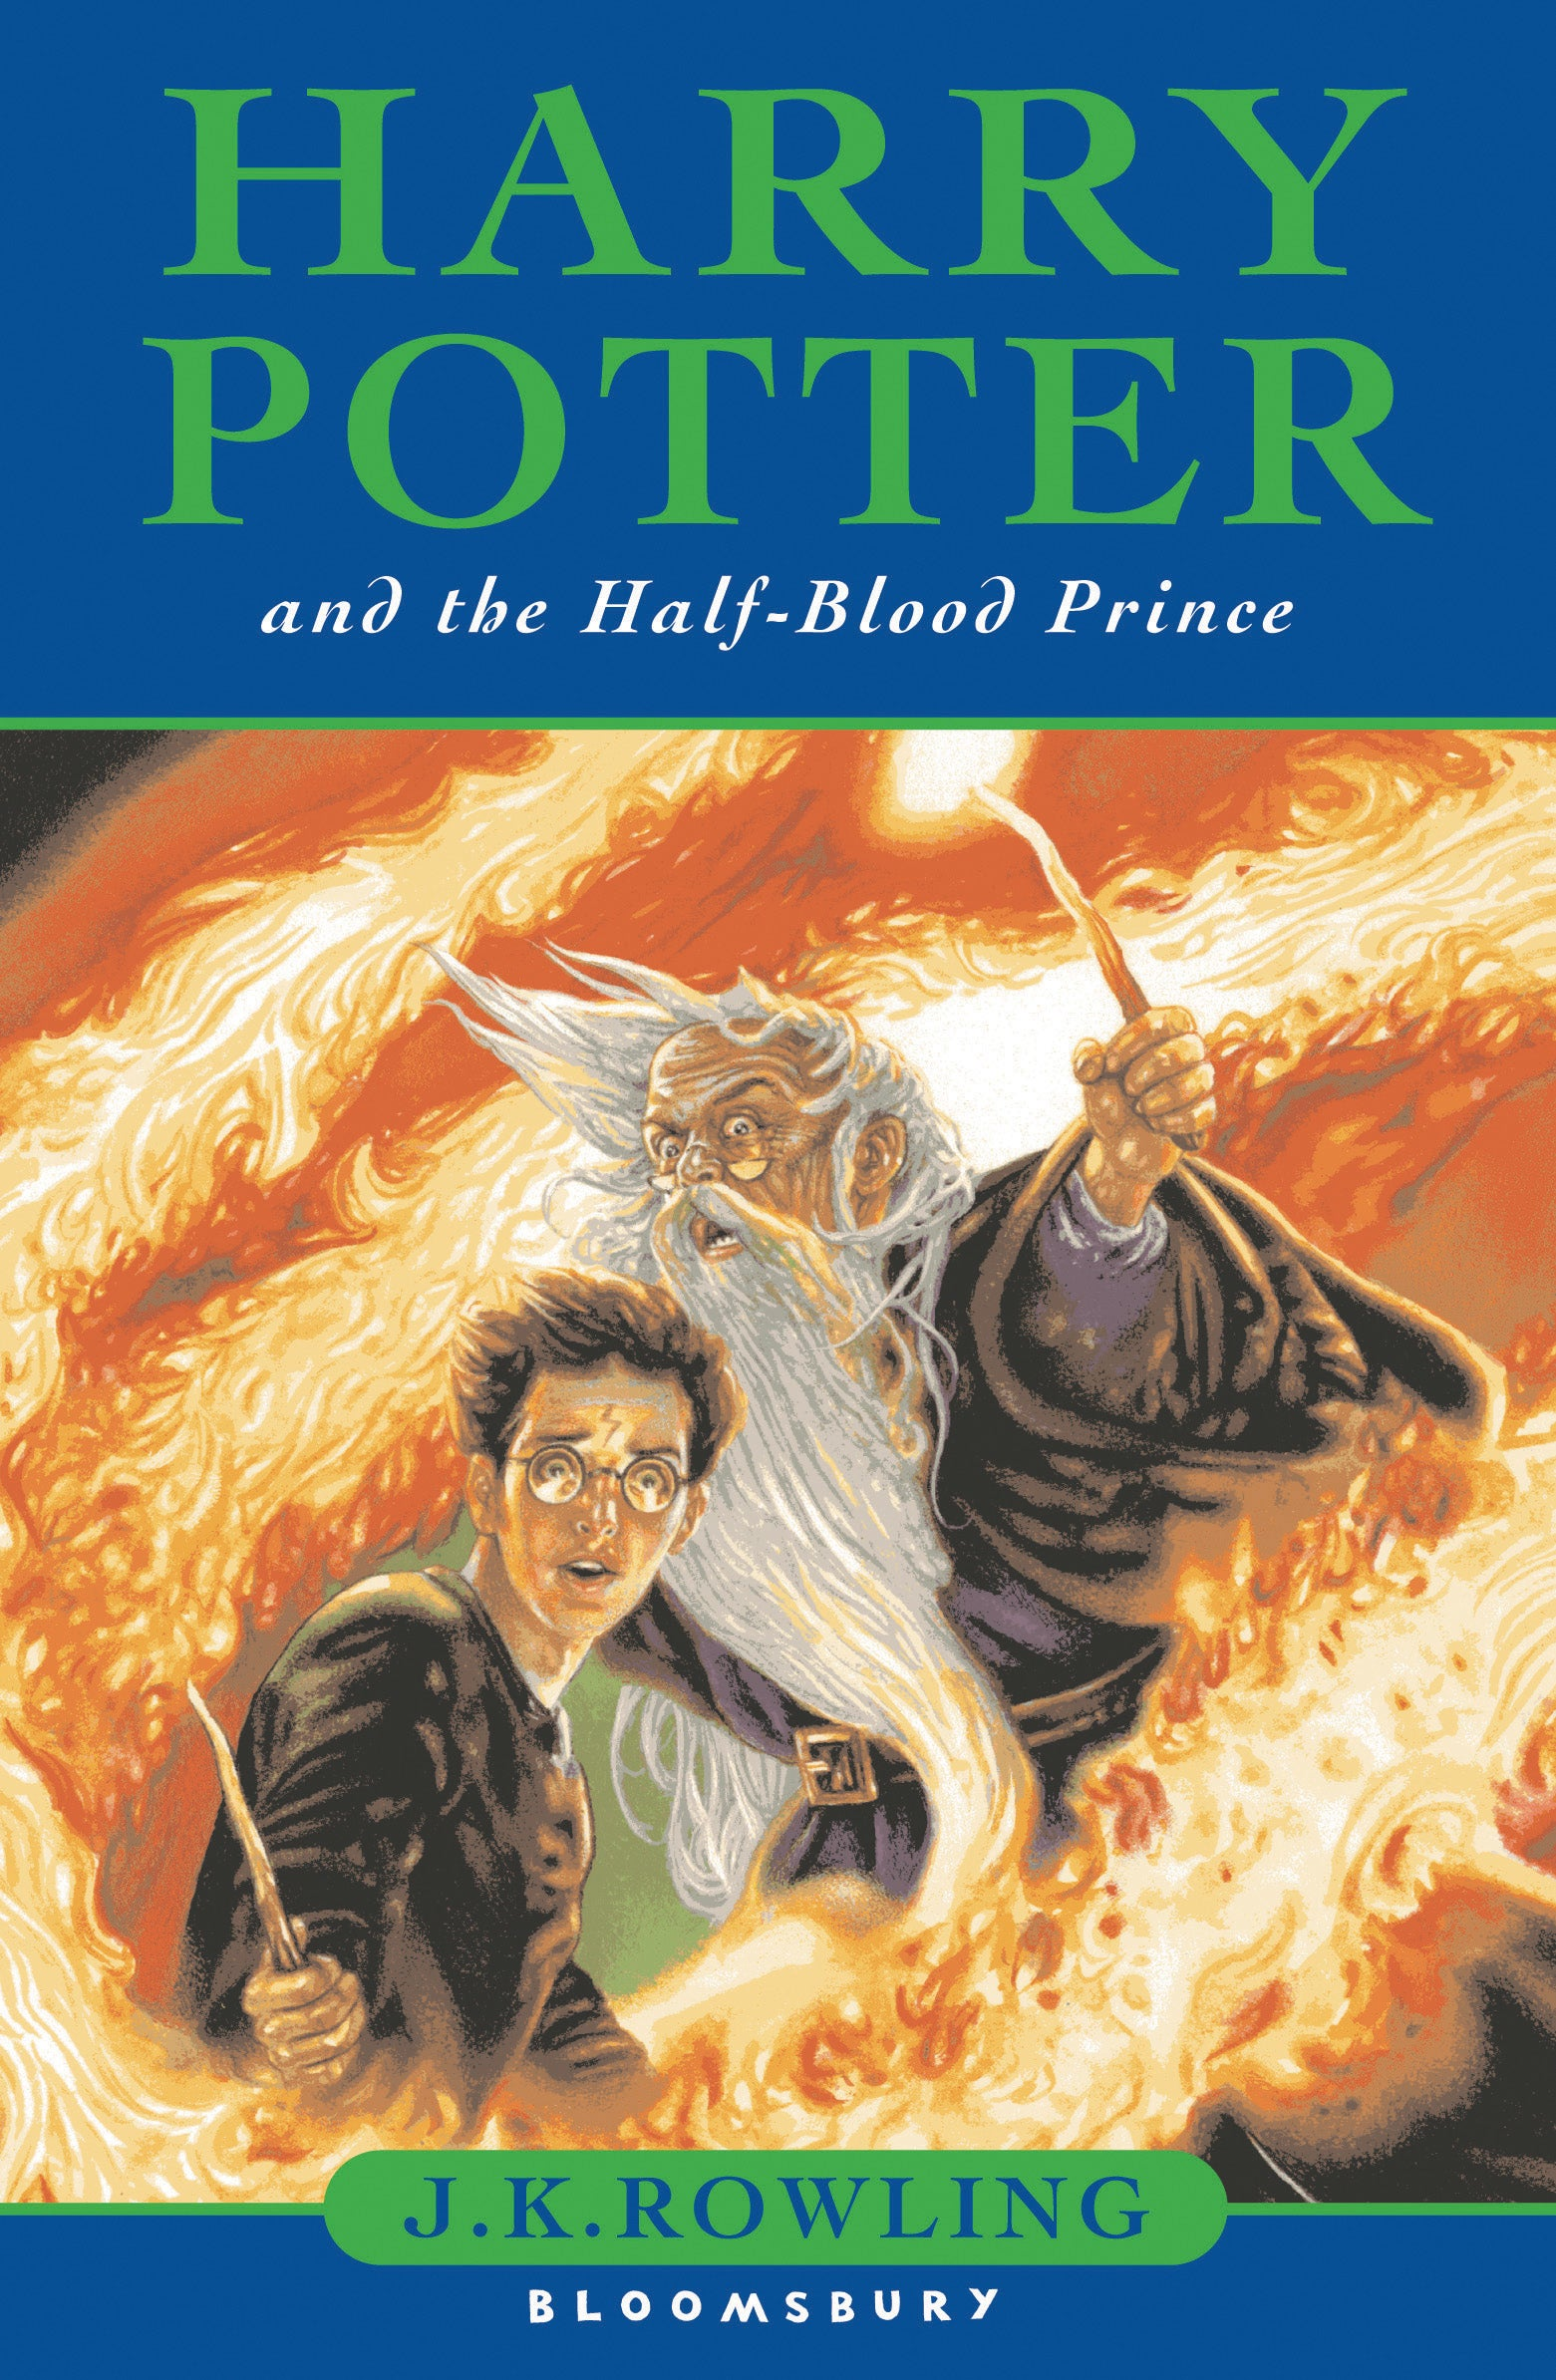 Harry Potter Book Cover Uk ~ How to tell if your old copies of harry potter are worth up to